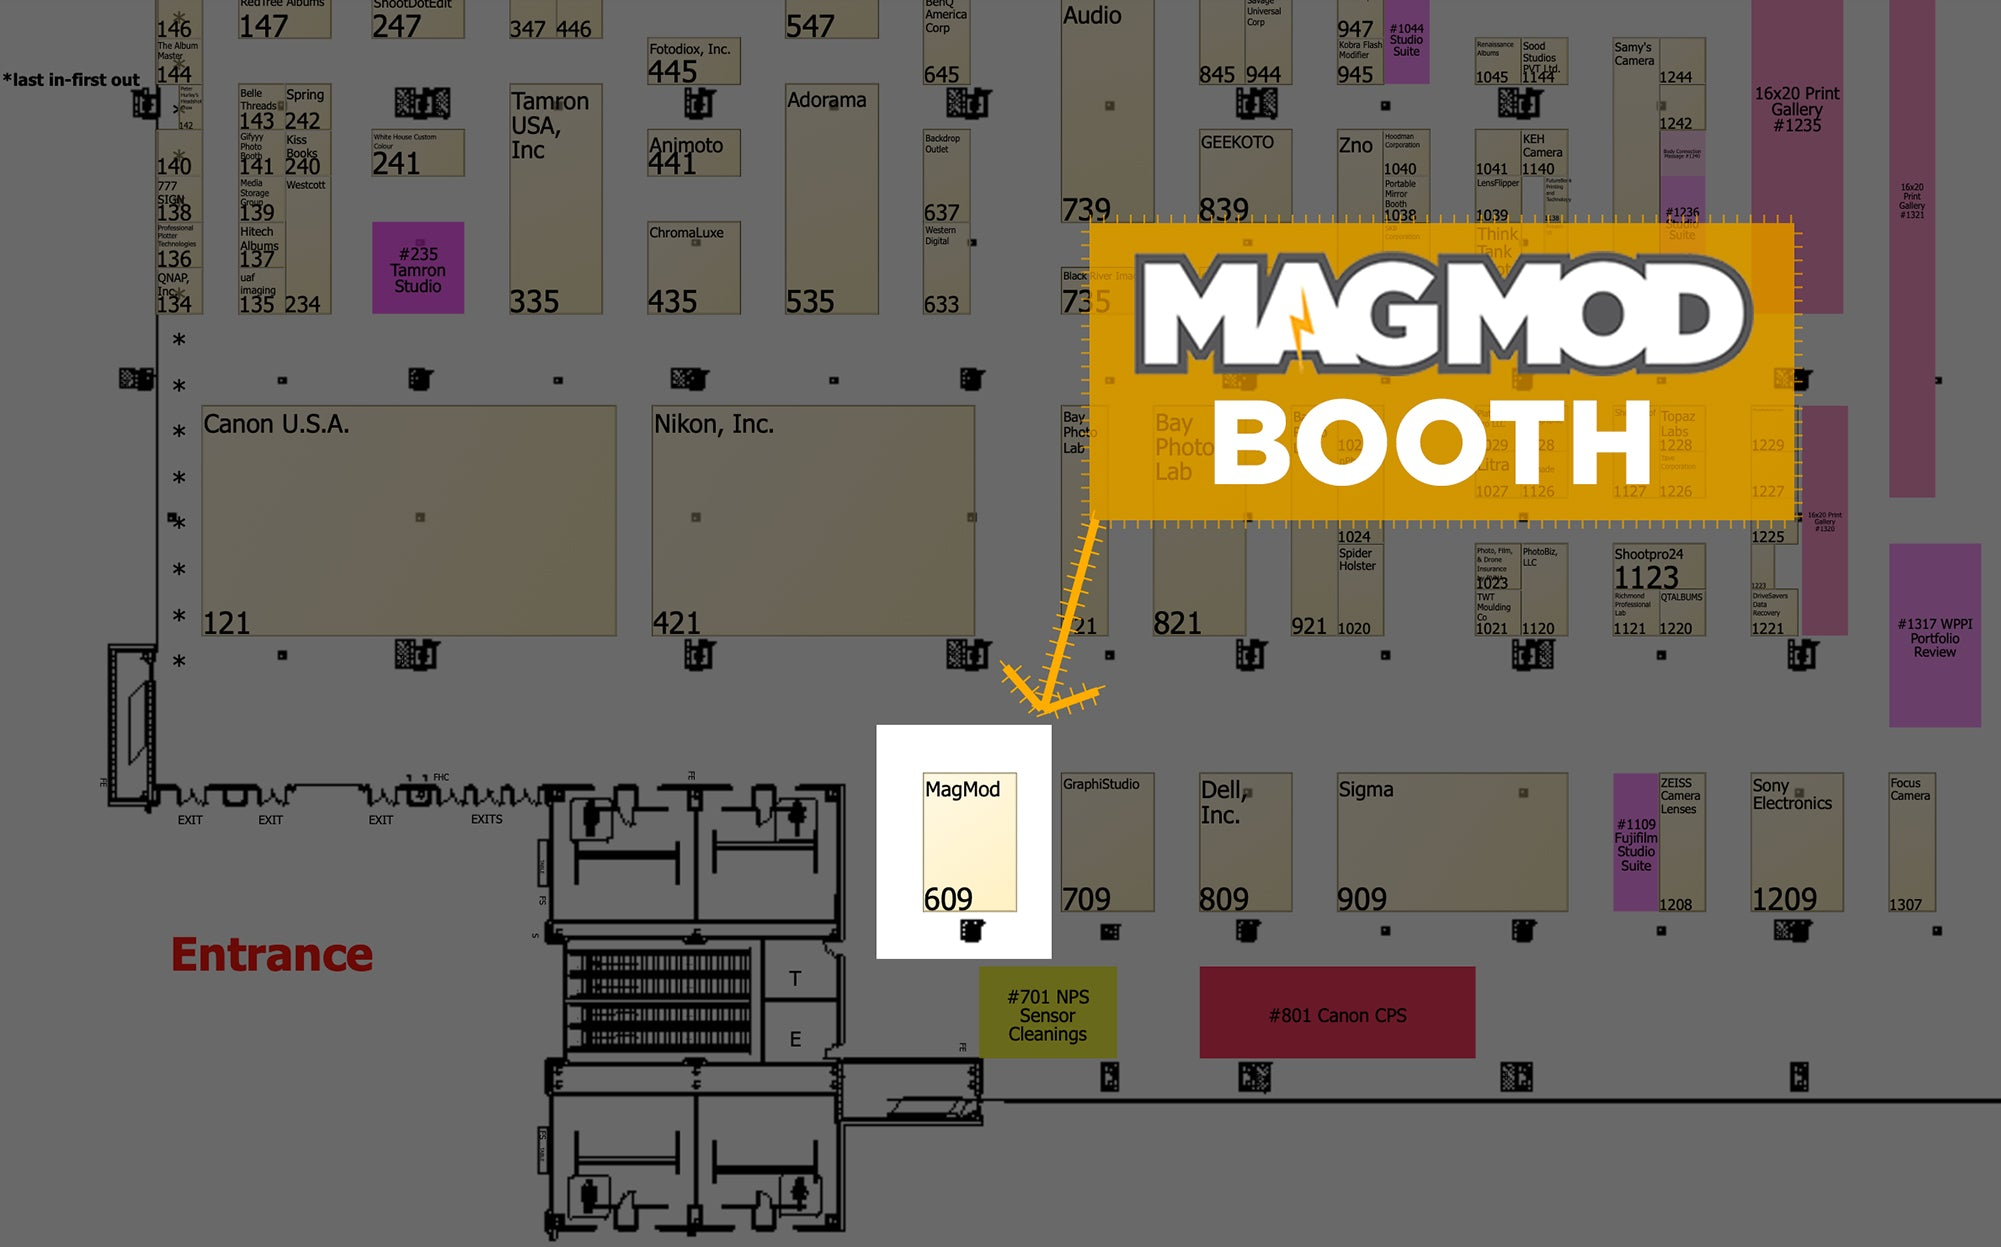 MagMod Booth Location